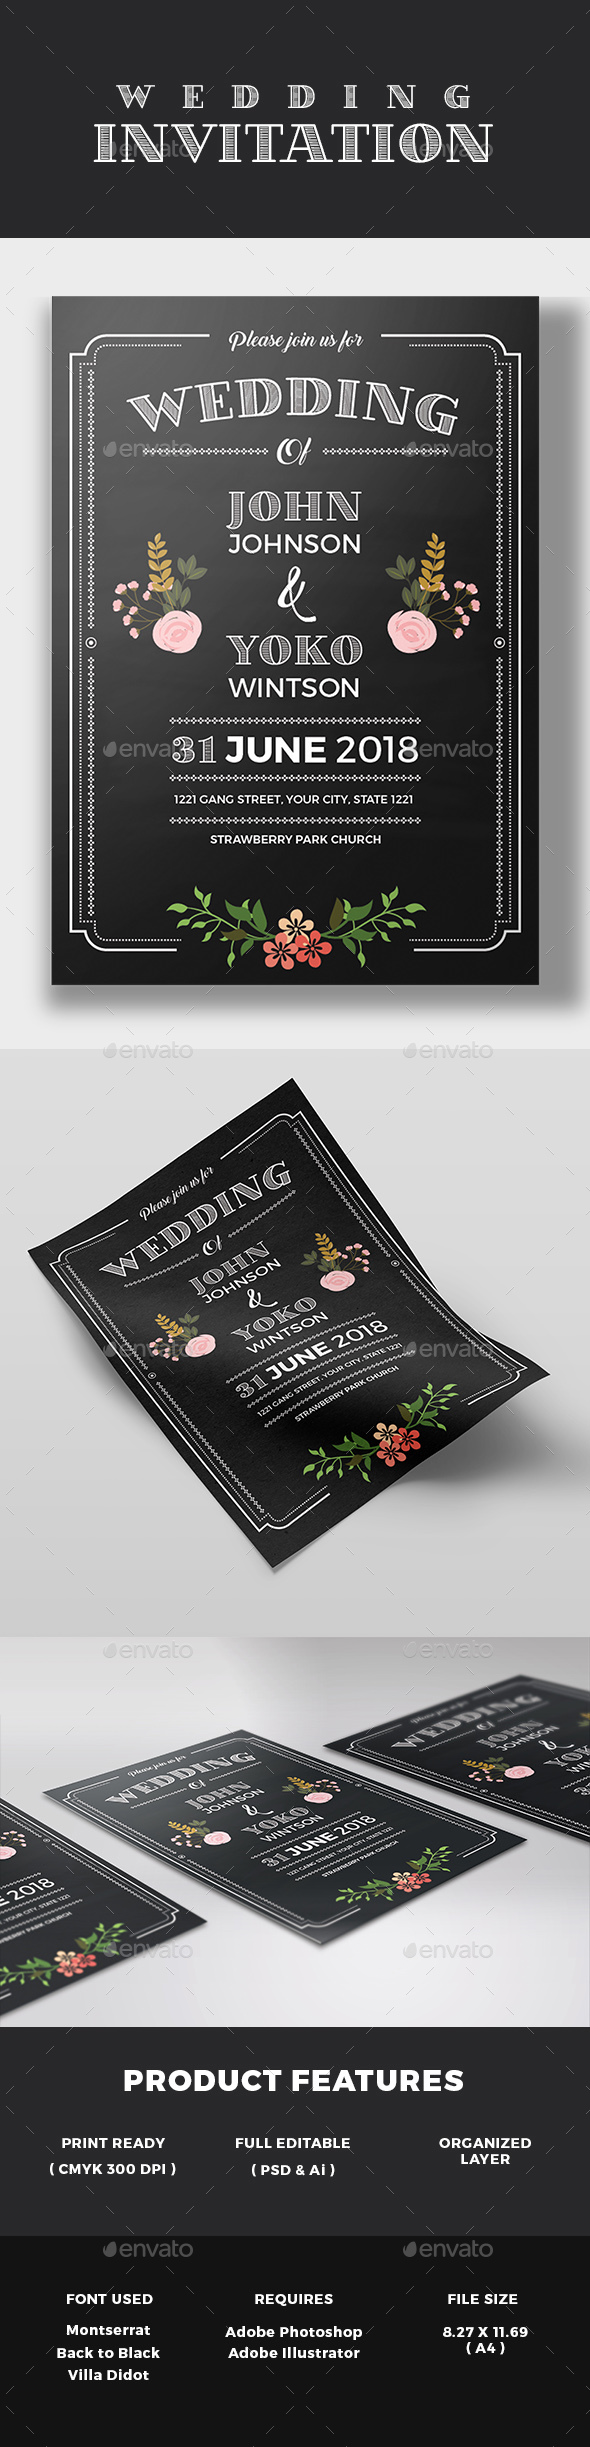 Chalkboard Style Wedding Invitation - Weddings Cards & Invites